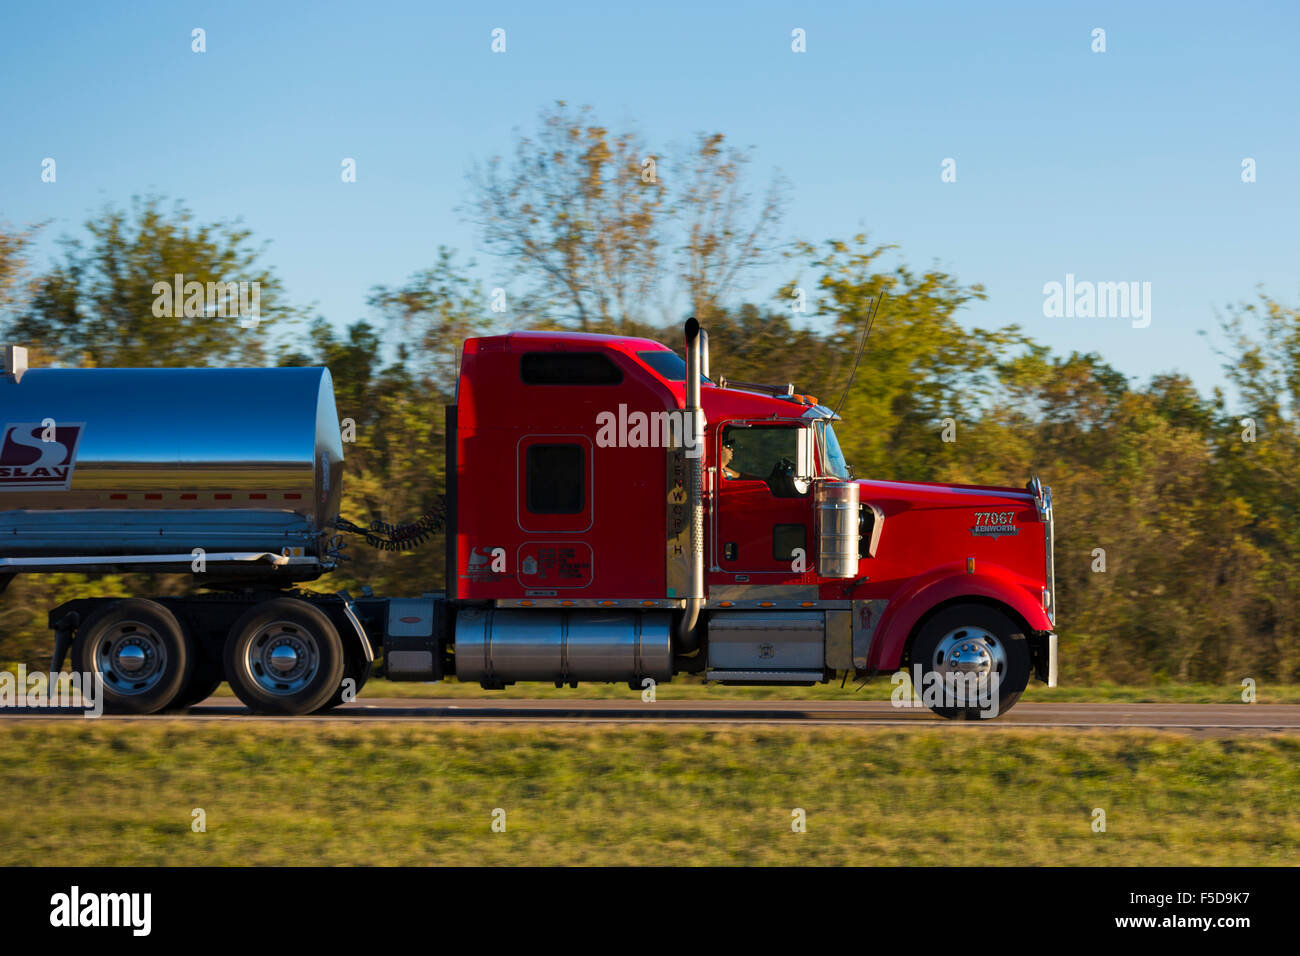 kenworth truck stockfotos kenworth truck bilder alamy. Black Bedroom Furniture Sets. Home Design Ideas